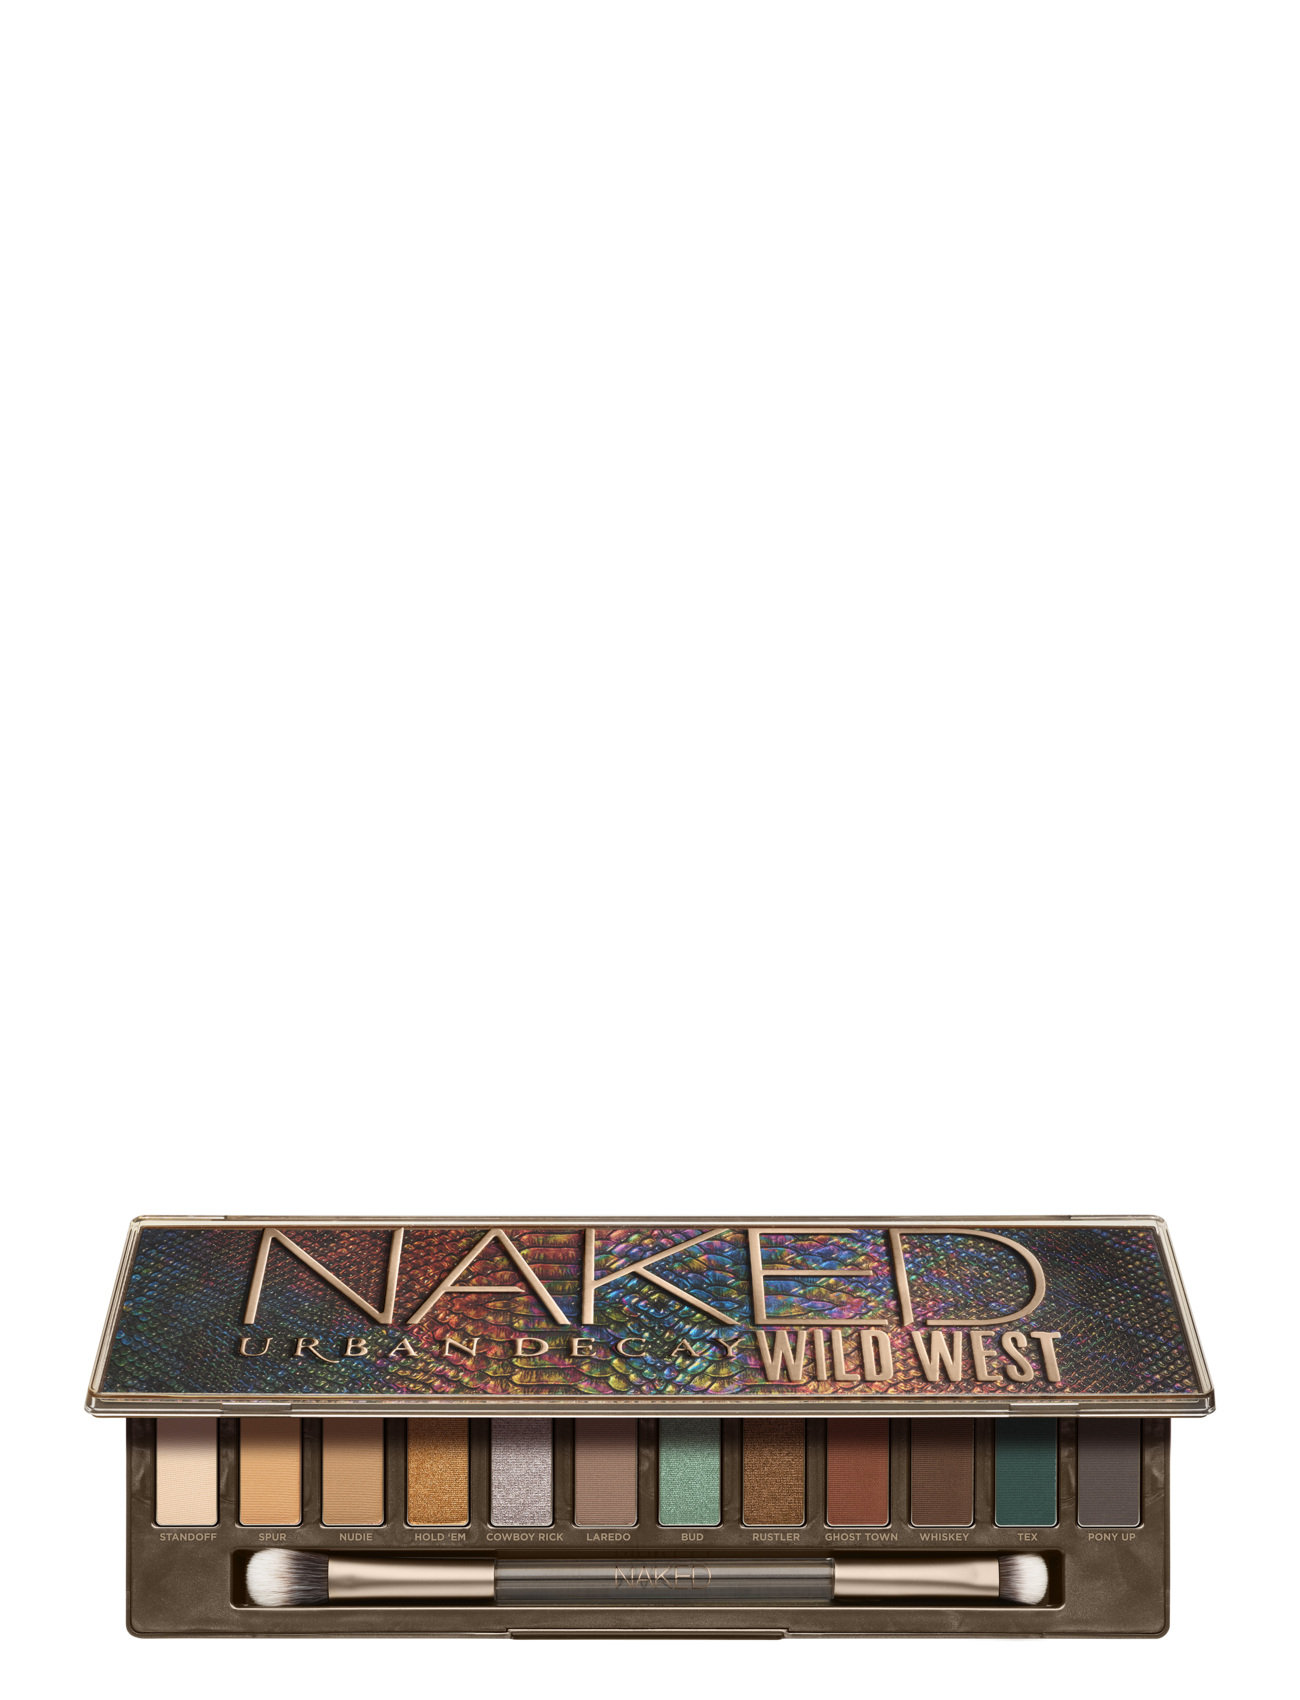 Image of Naked Wild West Palette Beauty WOMEN Makeup Eyes Eyeshadow Palettes Urban Decay (3507966187)